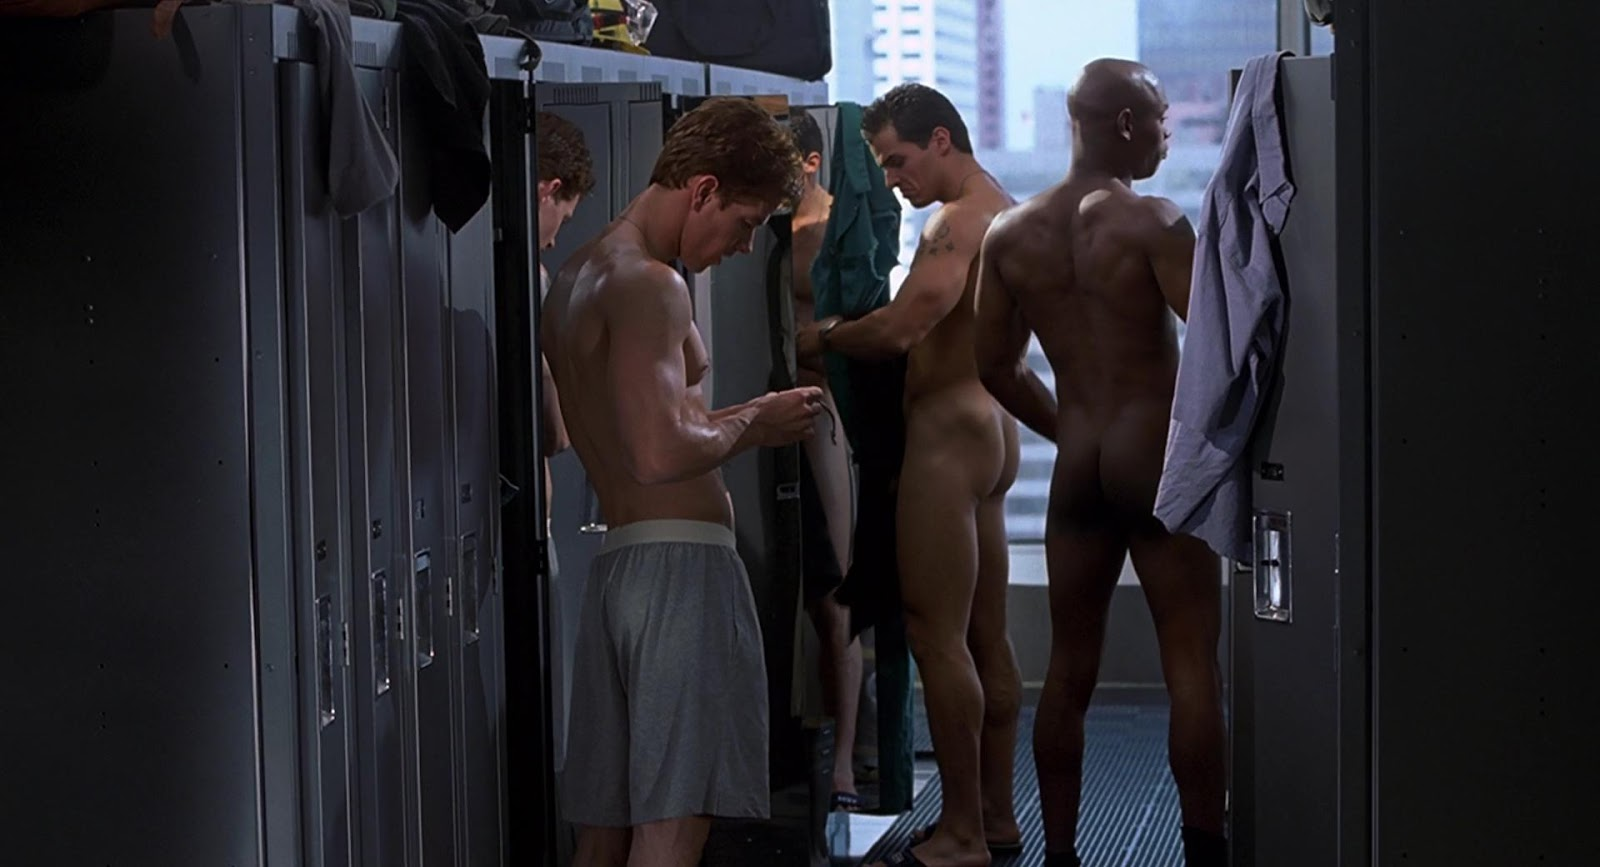 restituda1 s world of male nudity stephen amell in series dante s